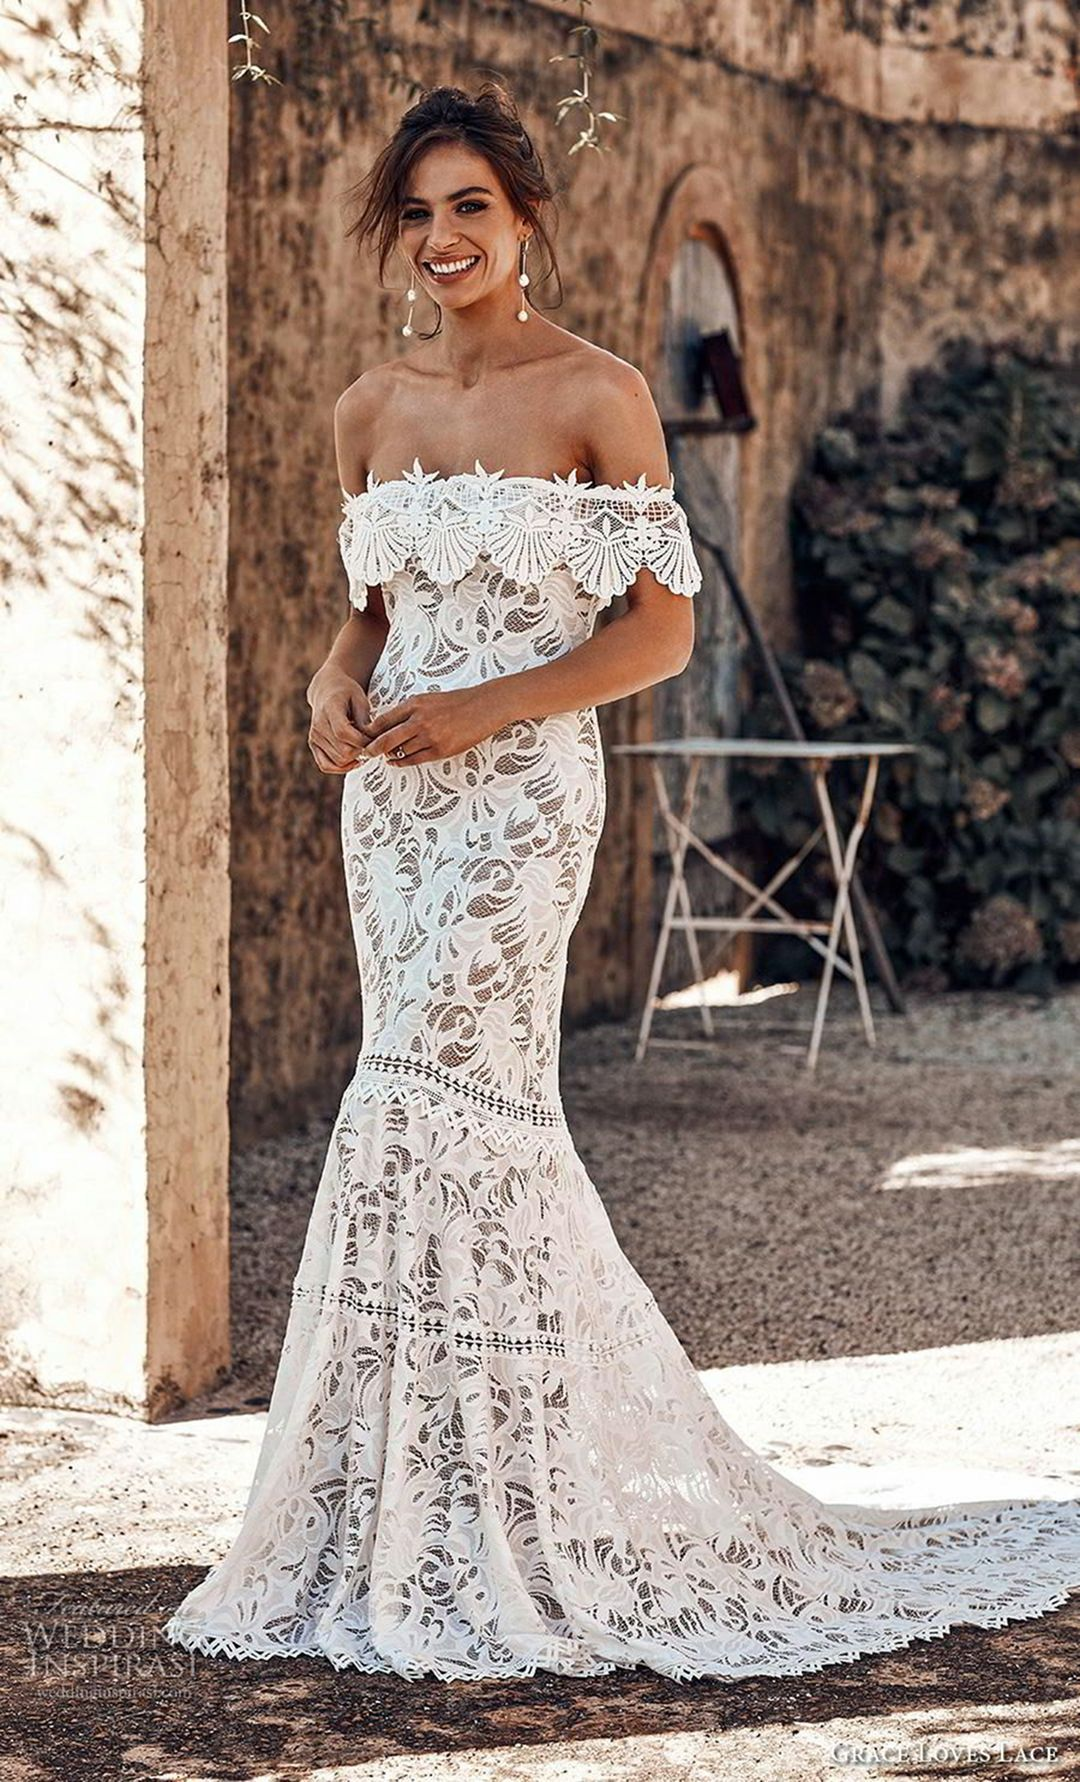 Celebrate Your Summer Wedding With Women S Lace Wedding Dress Ideas Laceweddingdressideas Wedding Dresses Short Wedding Dress Backless Wedding Dress [ 1782 x 1080 Pixel ]